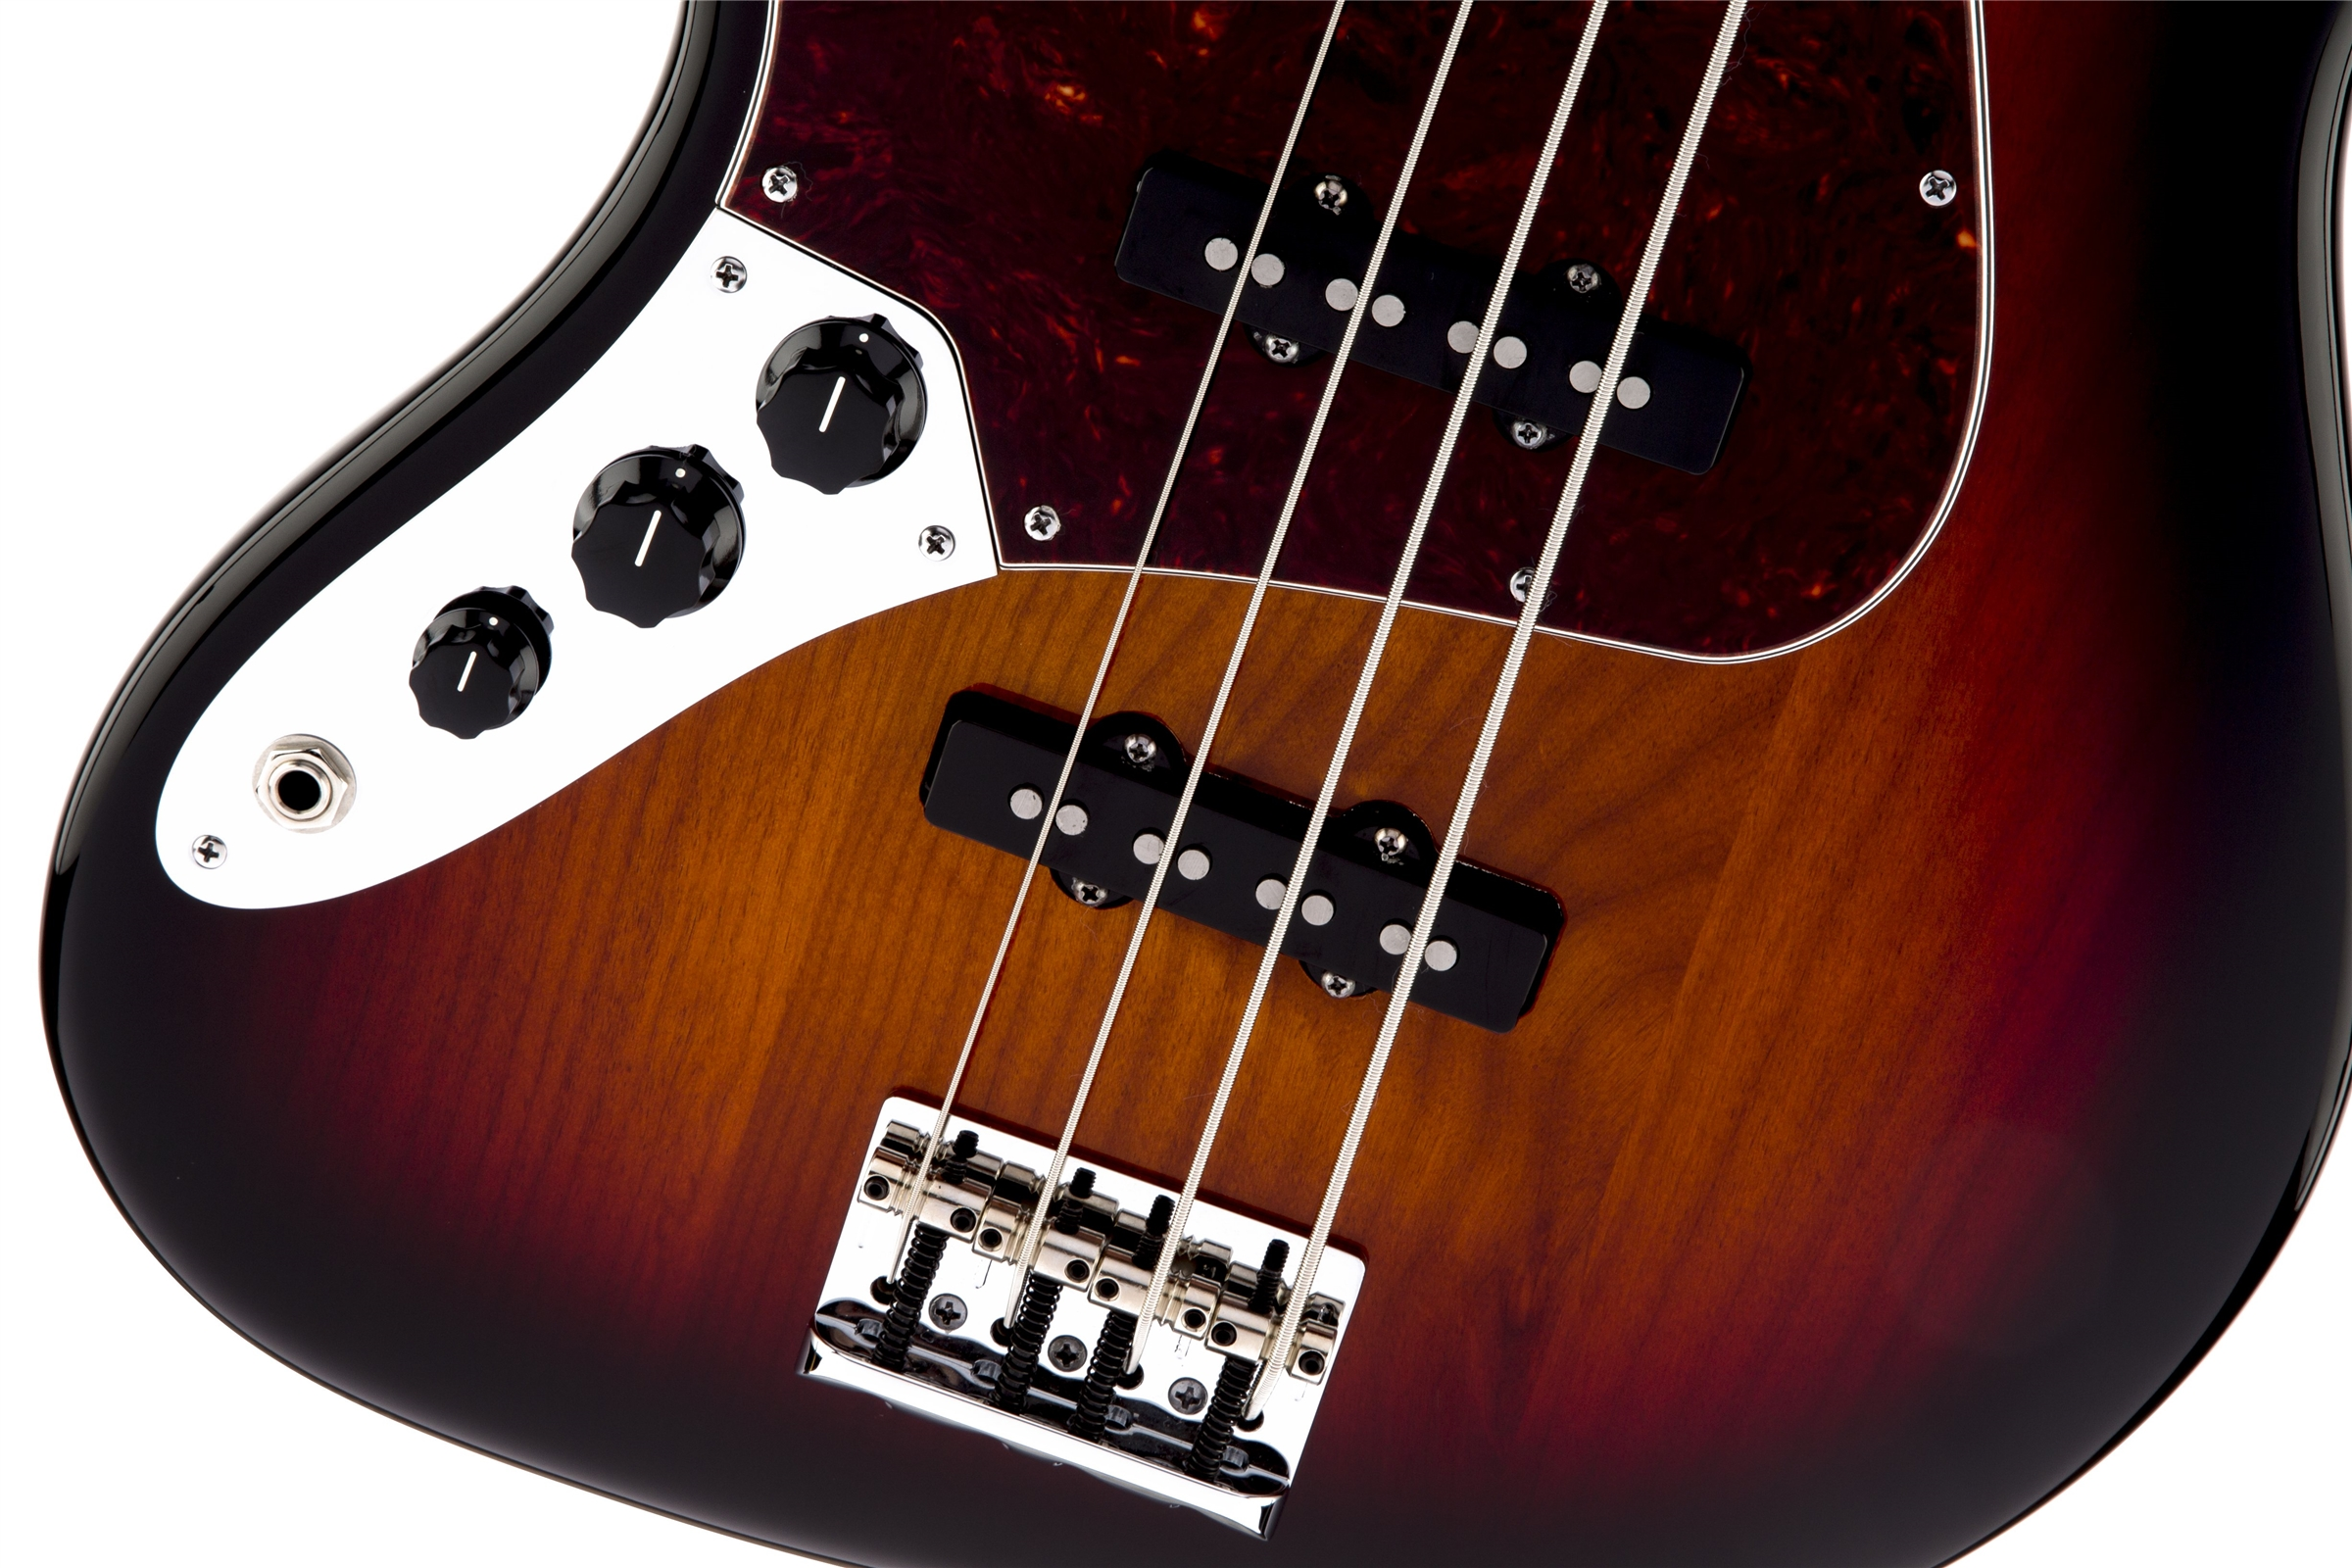 Fender American Standard Jazz Bass® Left-Hand 3-Color Sunburst Rosewood Fingerboard Electric Bass Guitar